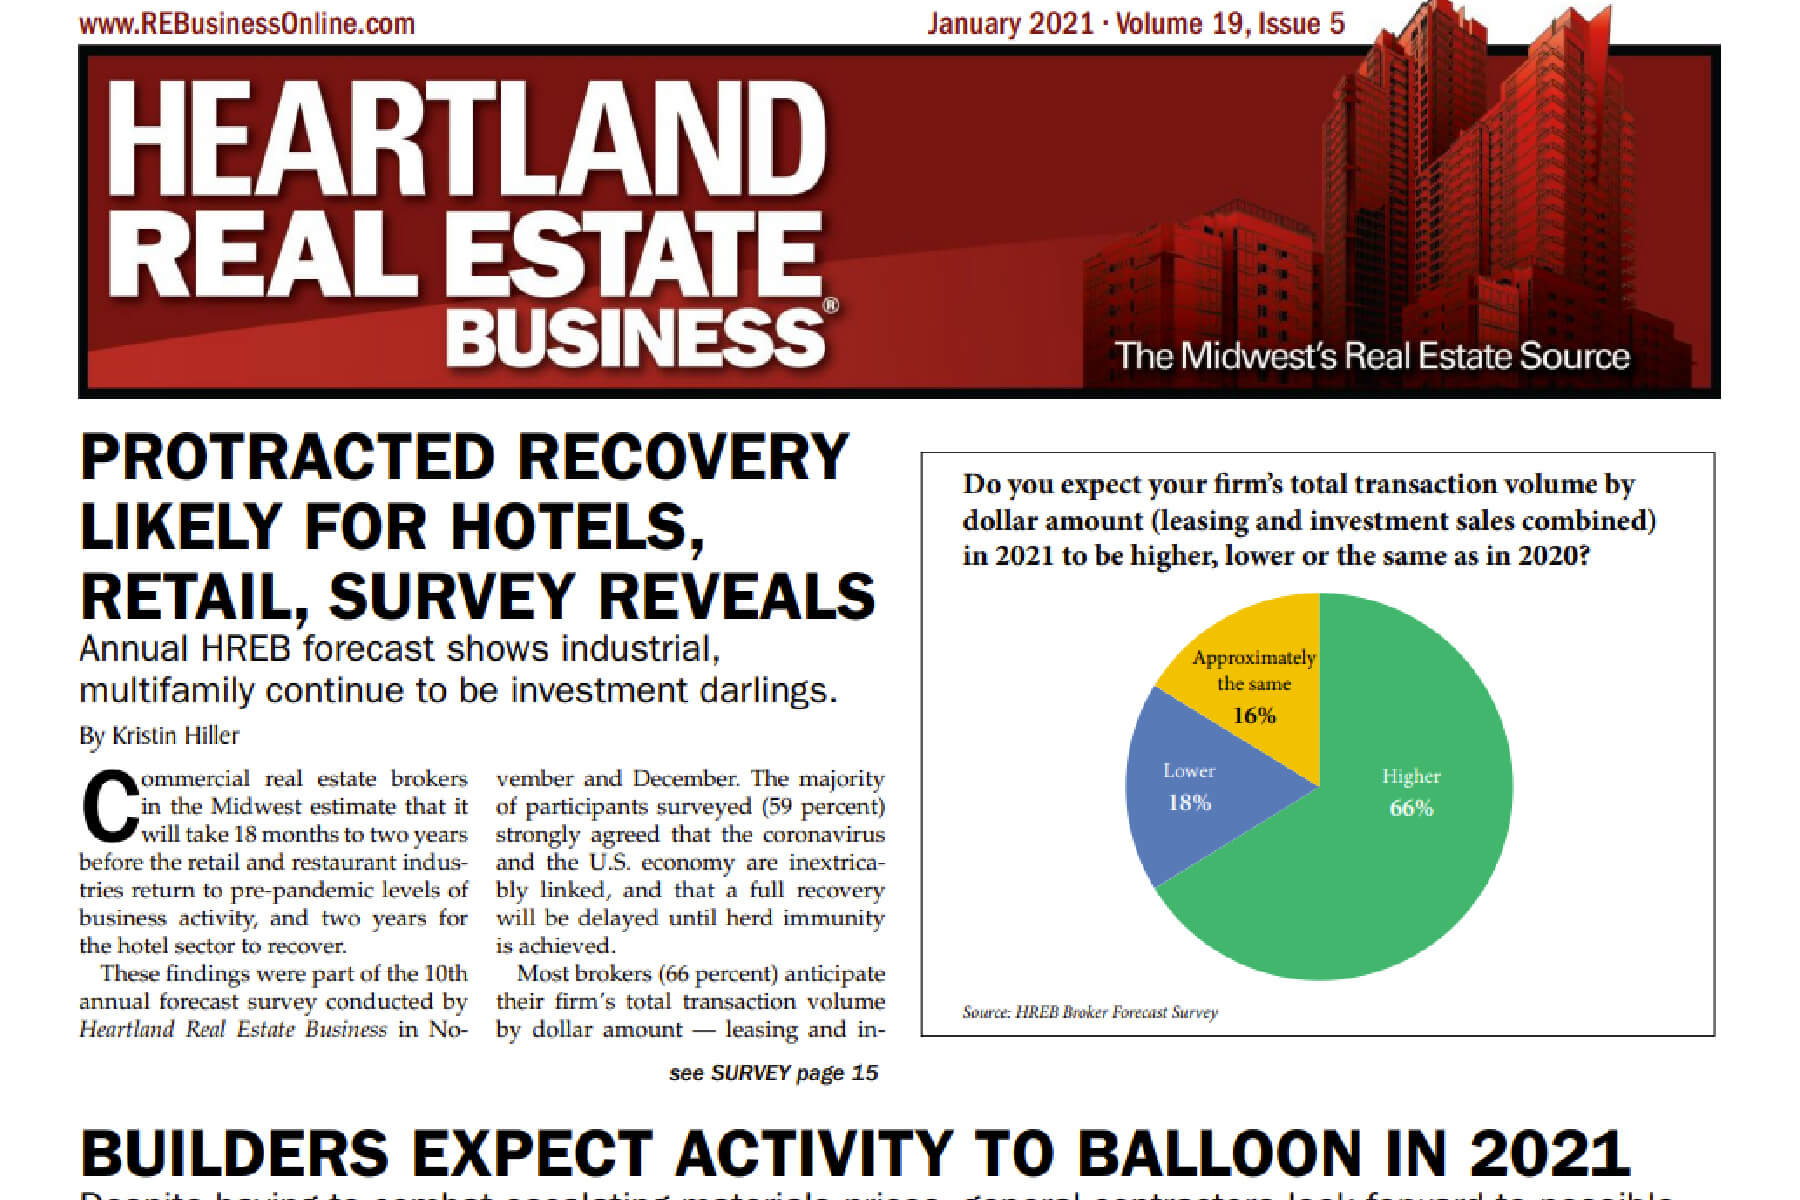 Knoebel's President discusses construction outlook for 2021 in Heartland Real Estate Business